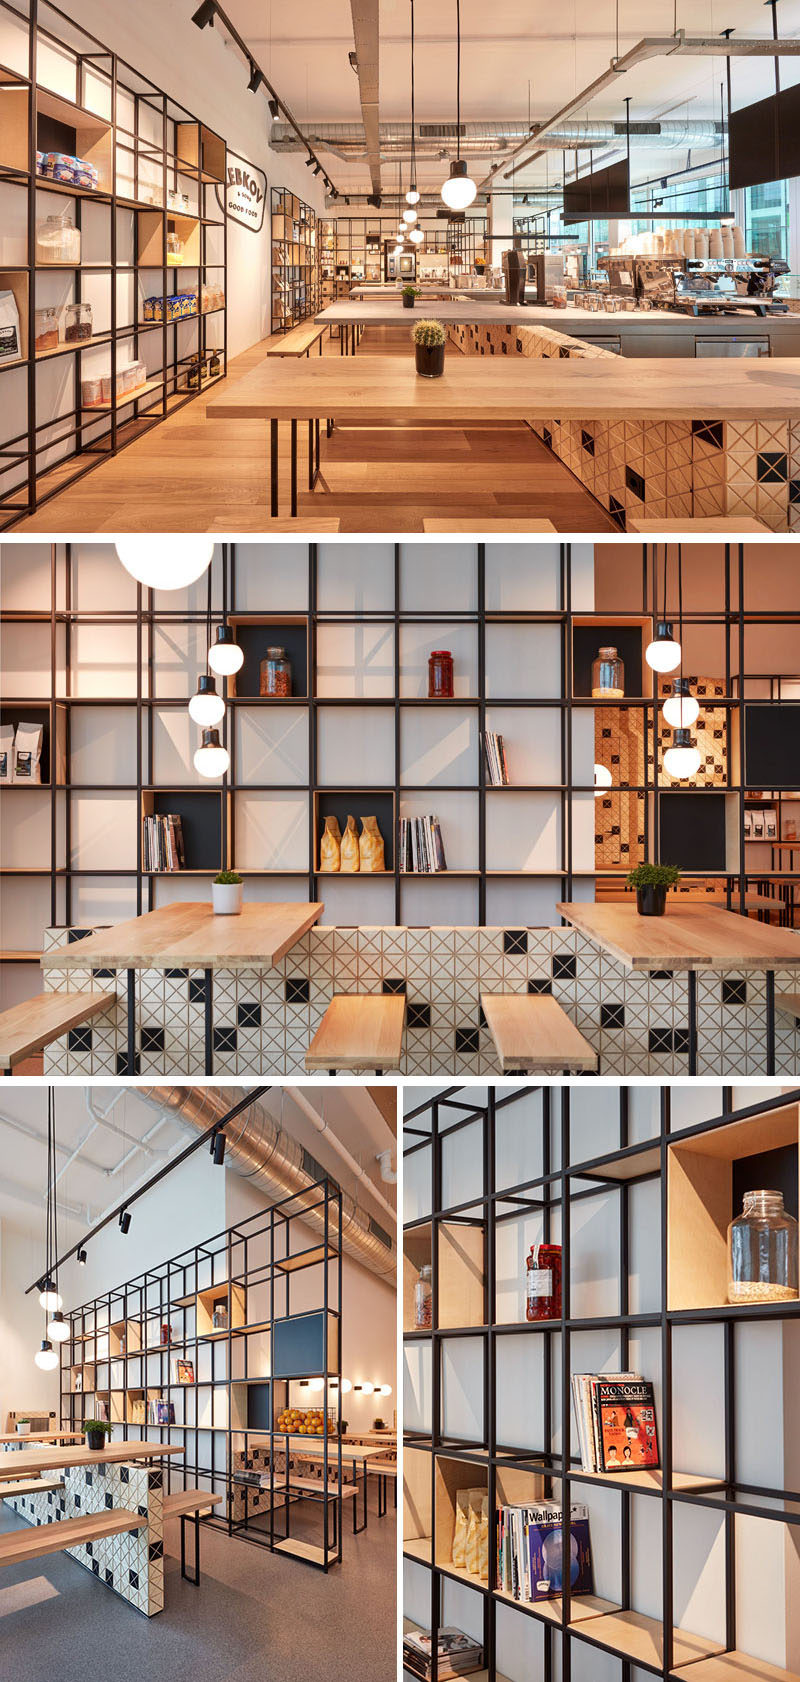 This modern cafe has open storage made from a modular steel structure, where fresh products and coffee beans are displayed. #Cafe #CoffeeShop #OpenShelving #ShevingDesign #SteelShelving